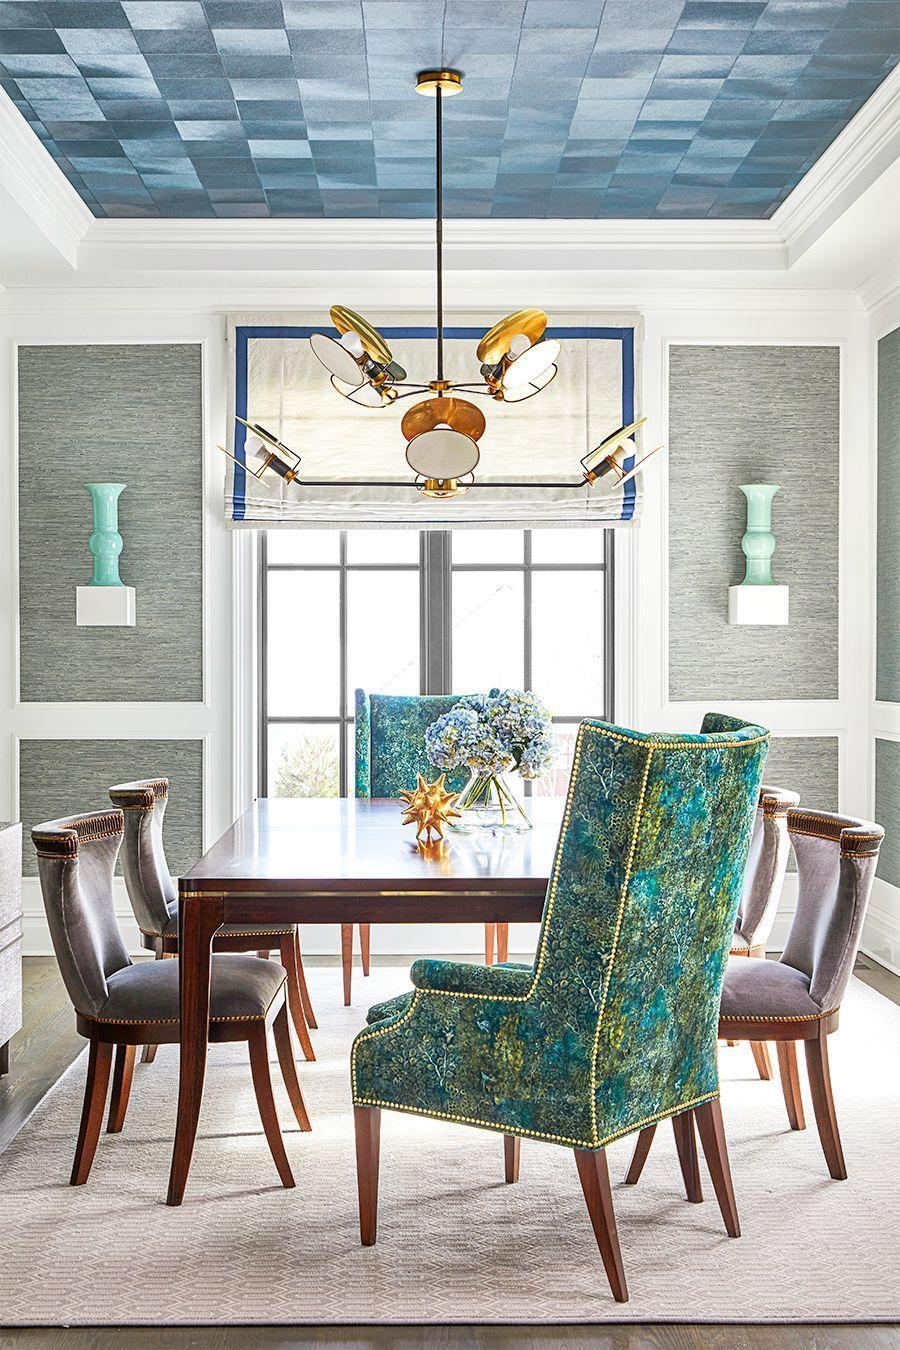 """<p>Two floating cubic shelves function as pedestals to prop up vases in this colorful dining room designed by <a href=""""https://coreydamenjenkins.com/"""" rel=""""nofollow noopener"""" target=""""_blank"""" data-ylk=""""slk:Corey Damen Jenkins"""" class=""""link rapid-noclick-resp"""">Corey Damen Jenkins</a>. This trick is perfect for a narrow wall in a dining room, hallway, or entry. </p>"""